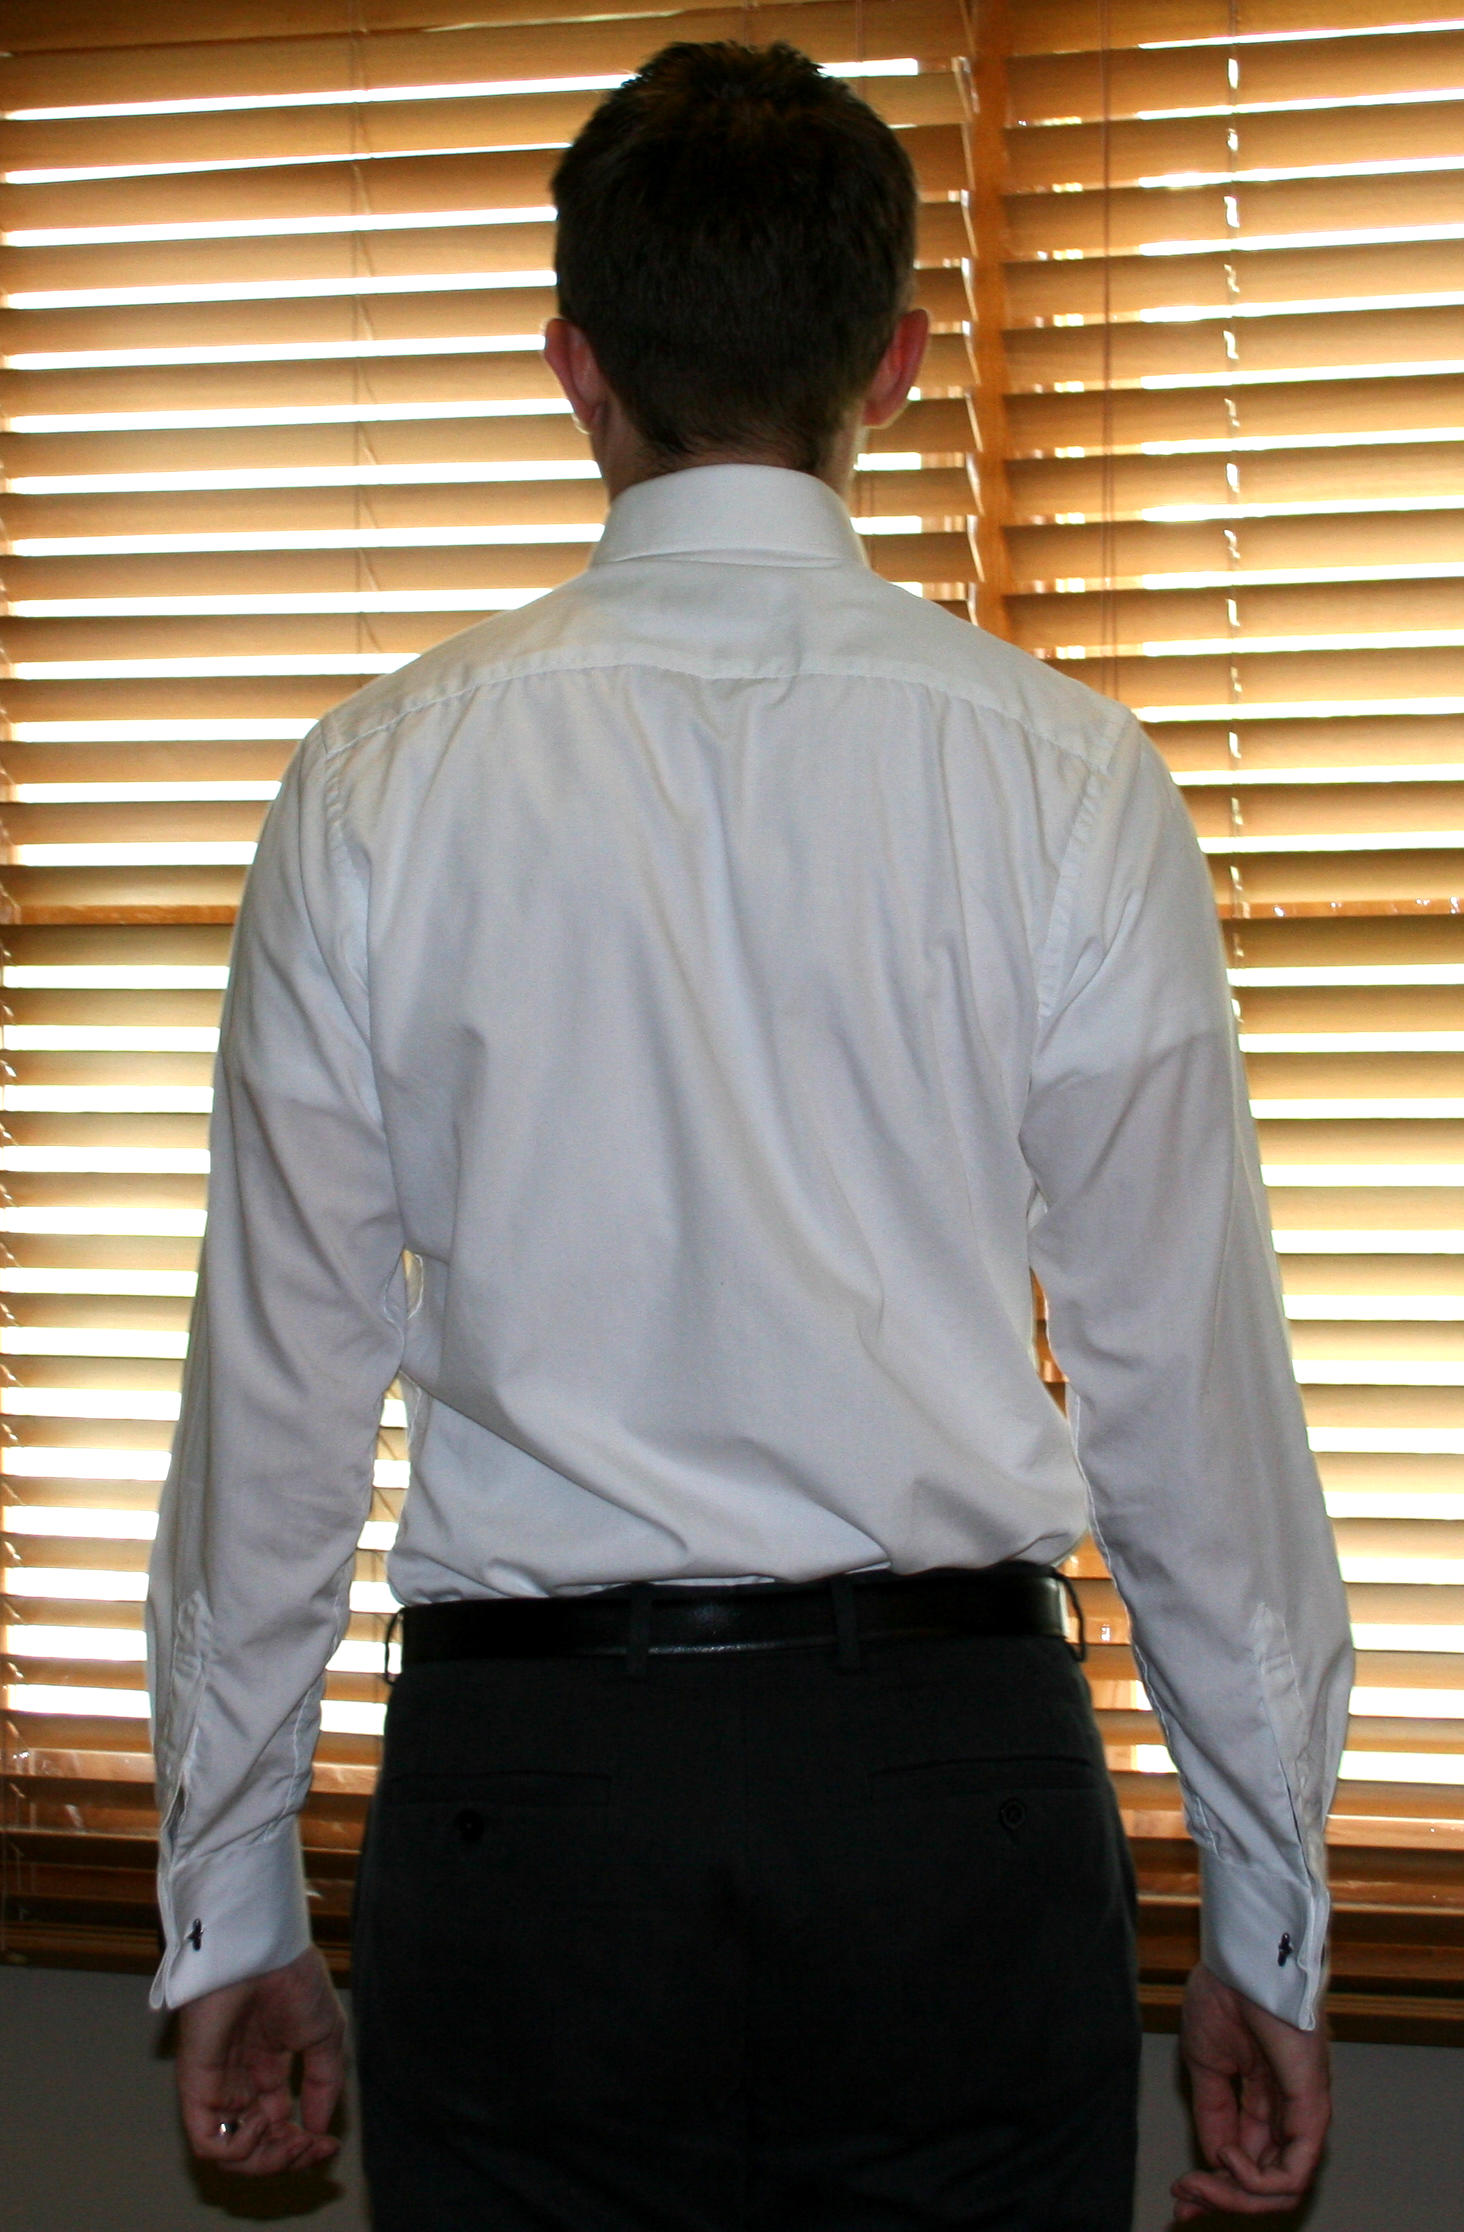 mt_shirt_tucked_back.png